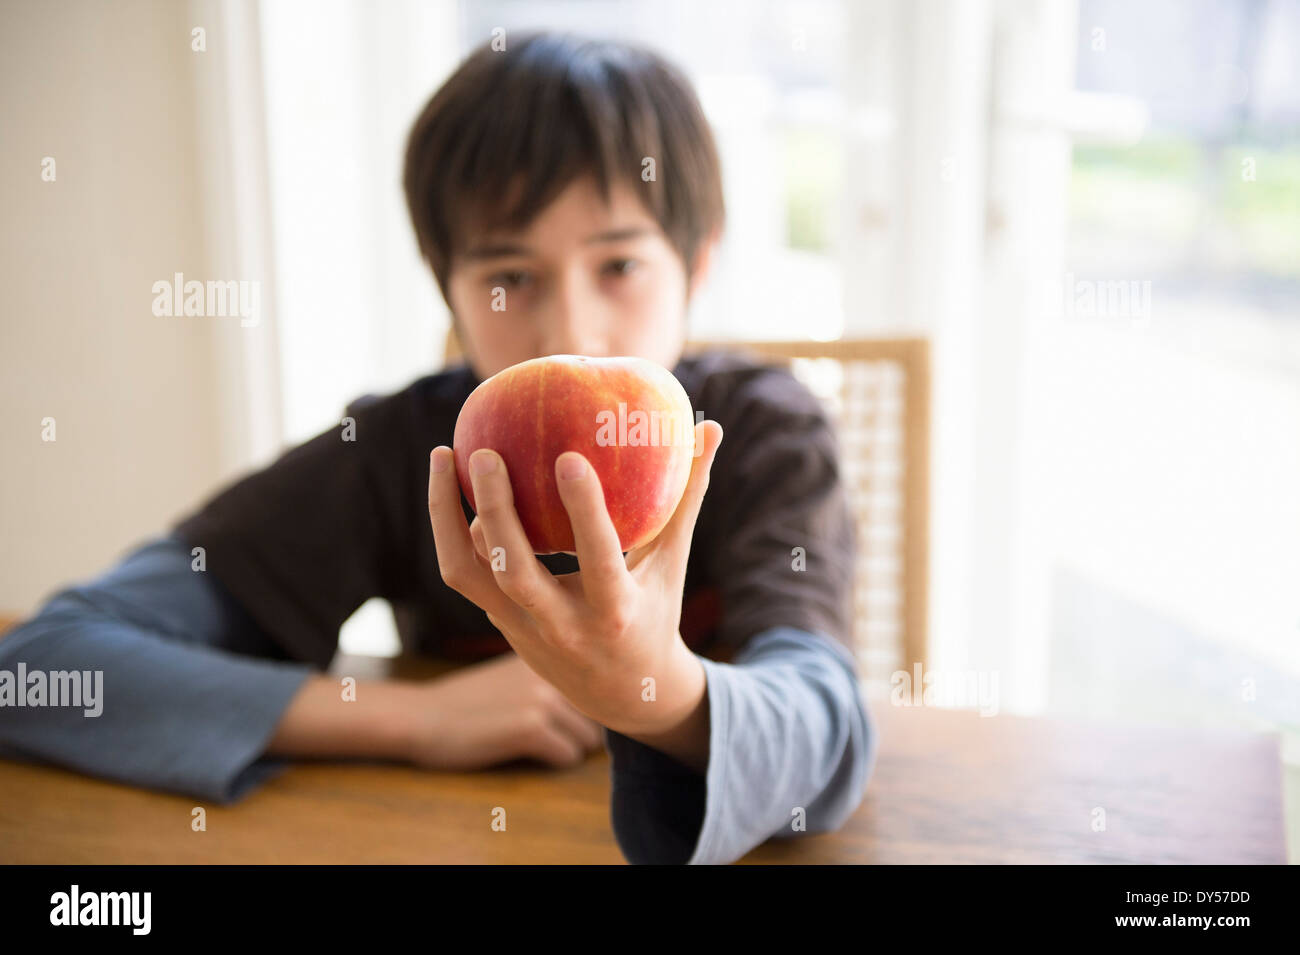 Boy sitting at table, holding apple in front of him Stock Photo